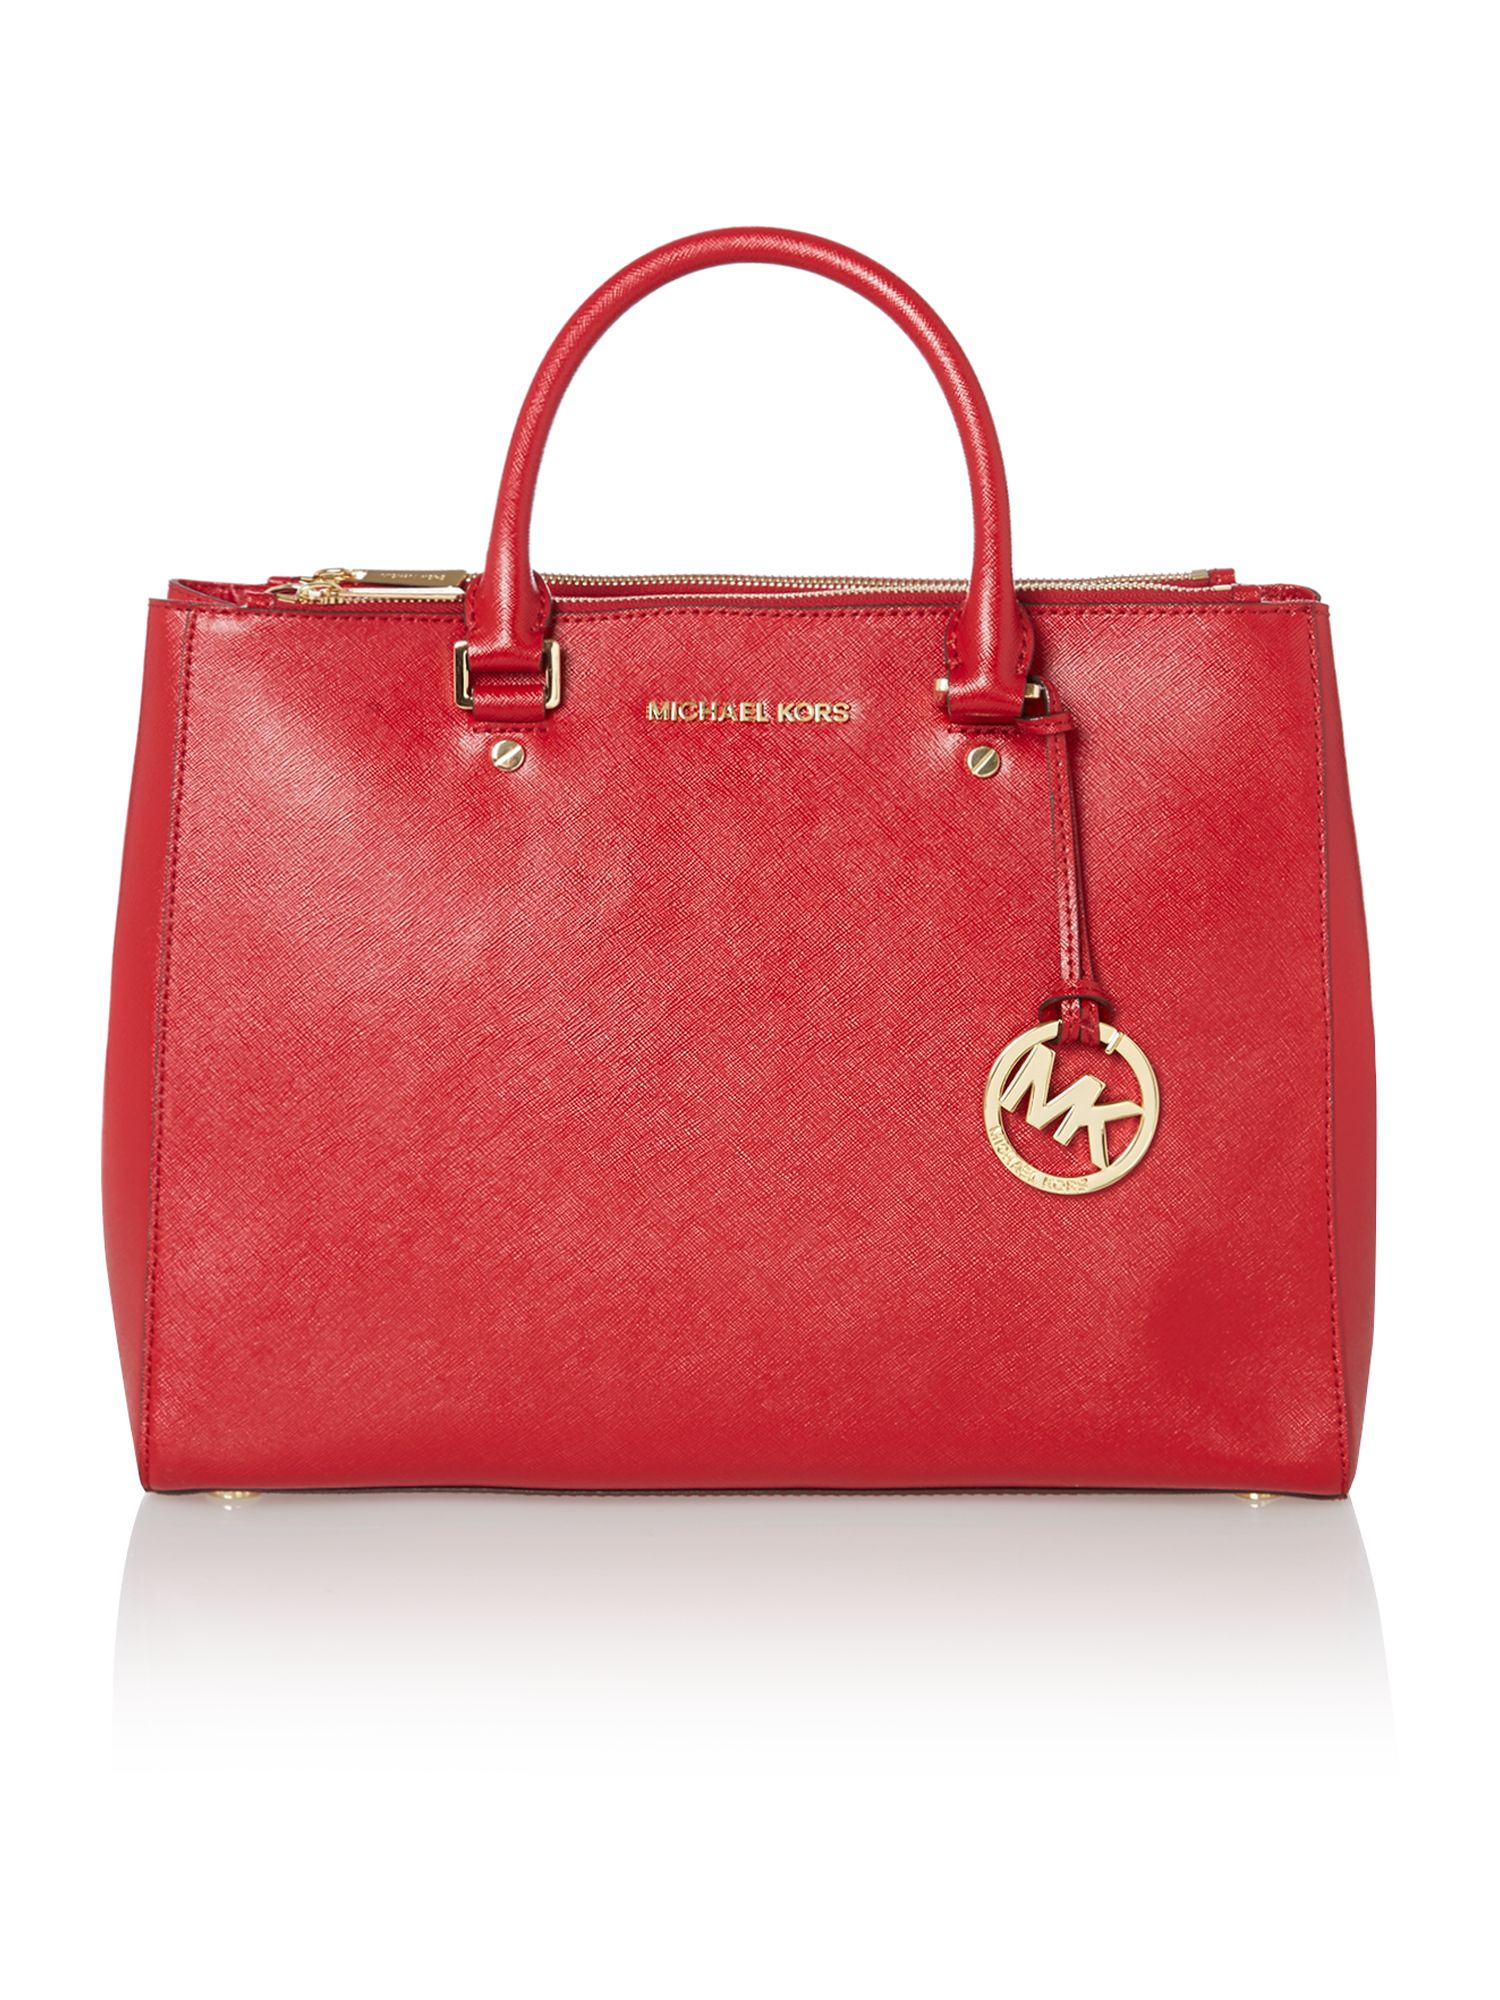 Jet set travel red double zip tote bag